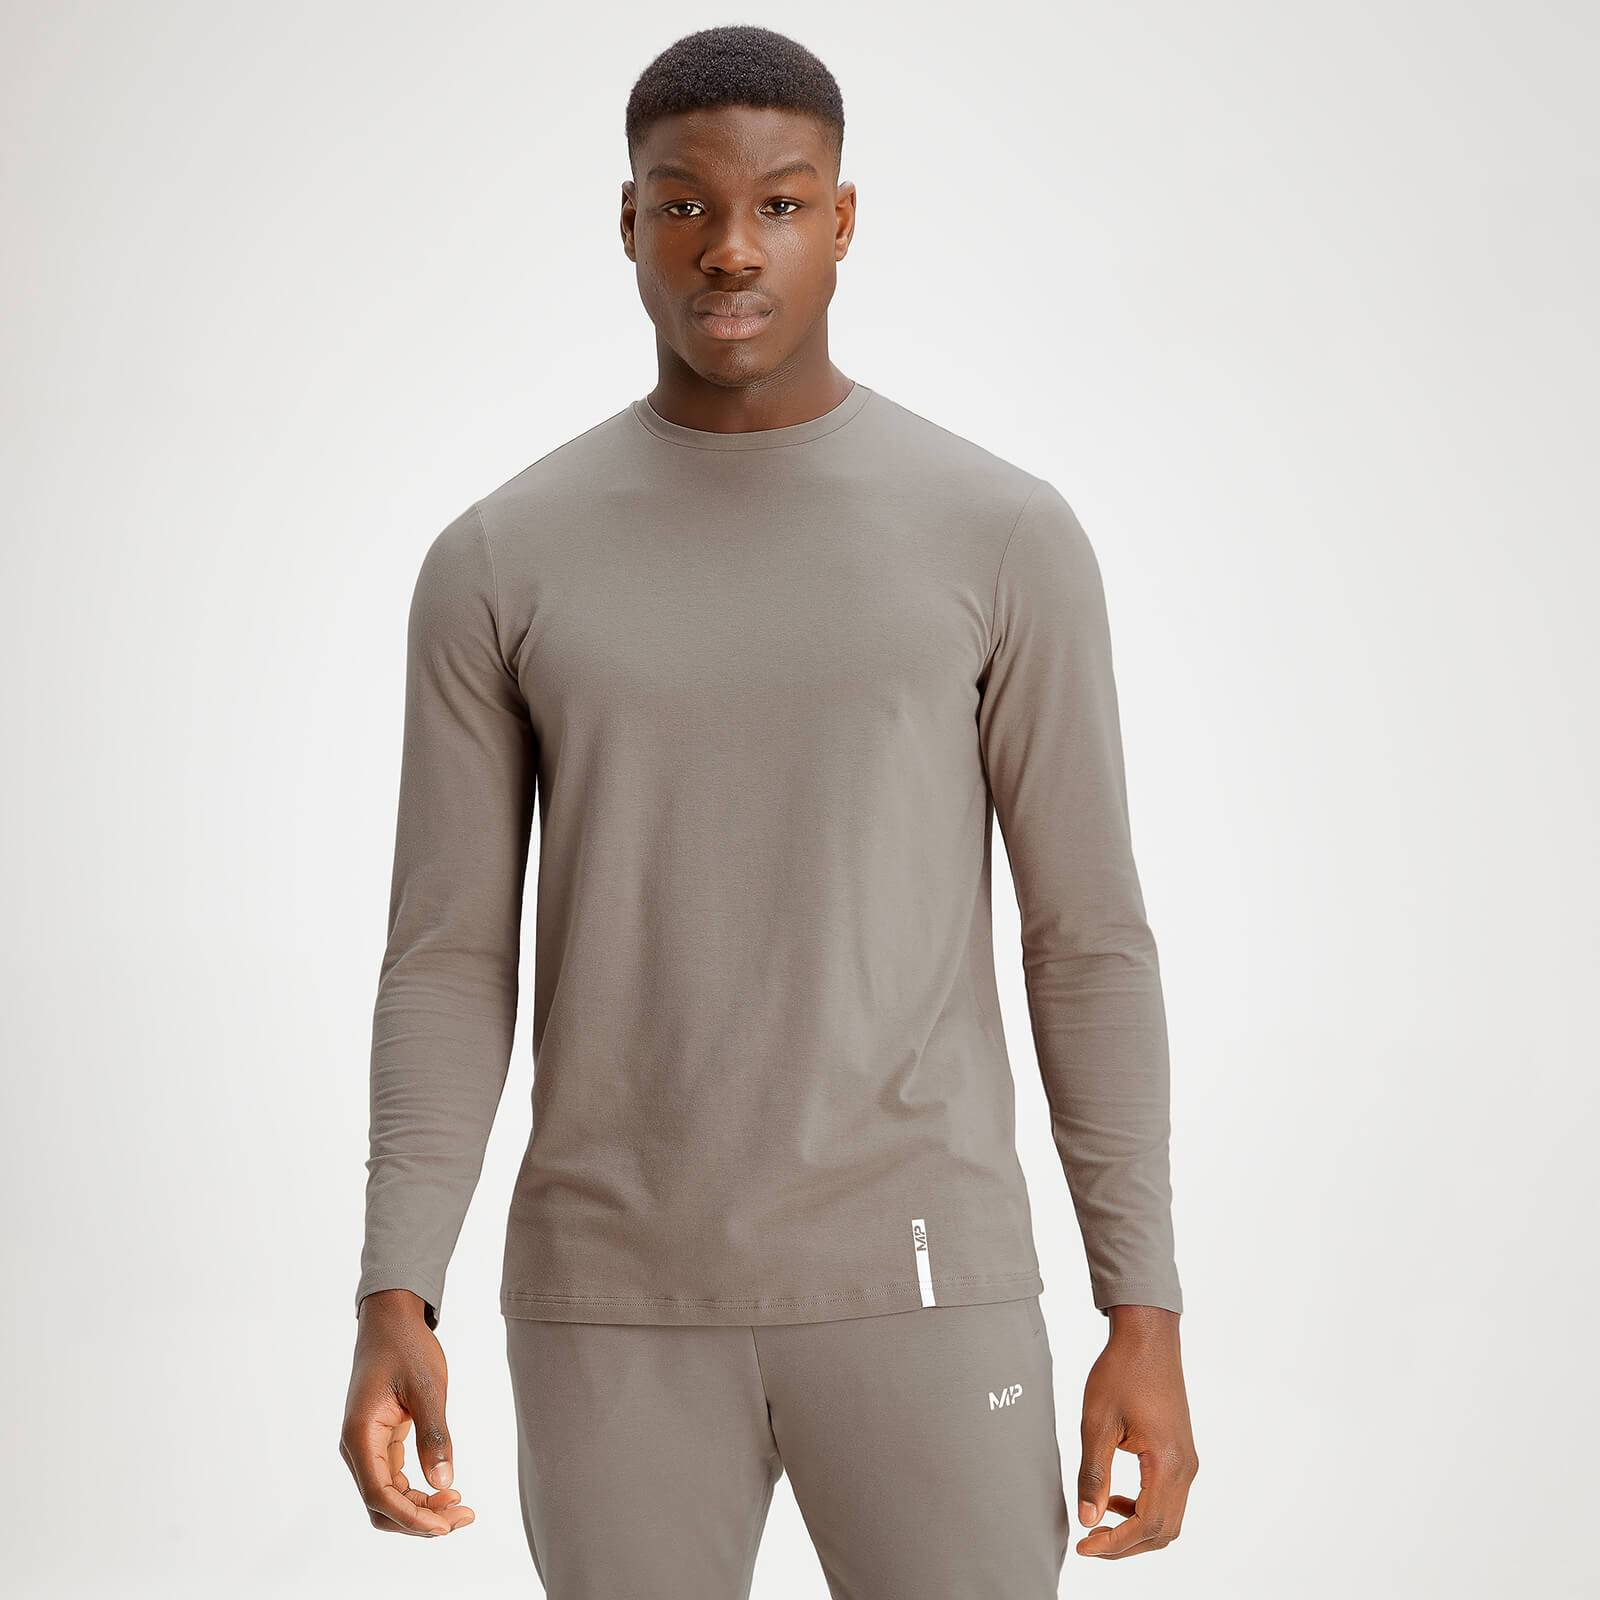 Mp Men's Luxe Classic Long Sleeve Crew Top - Taupe - M